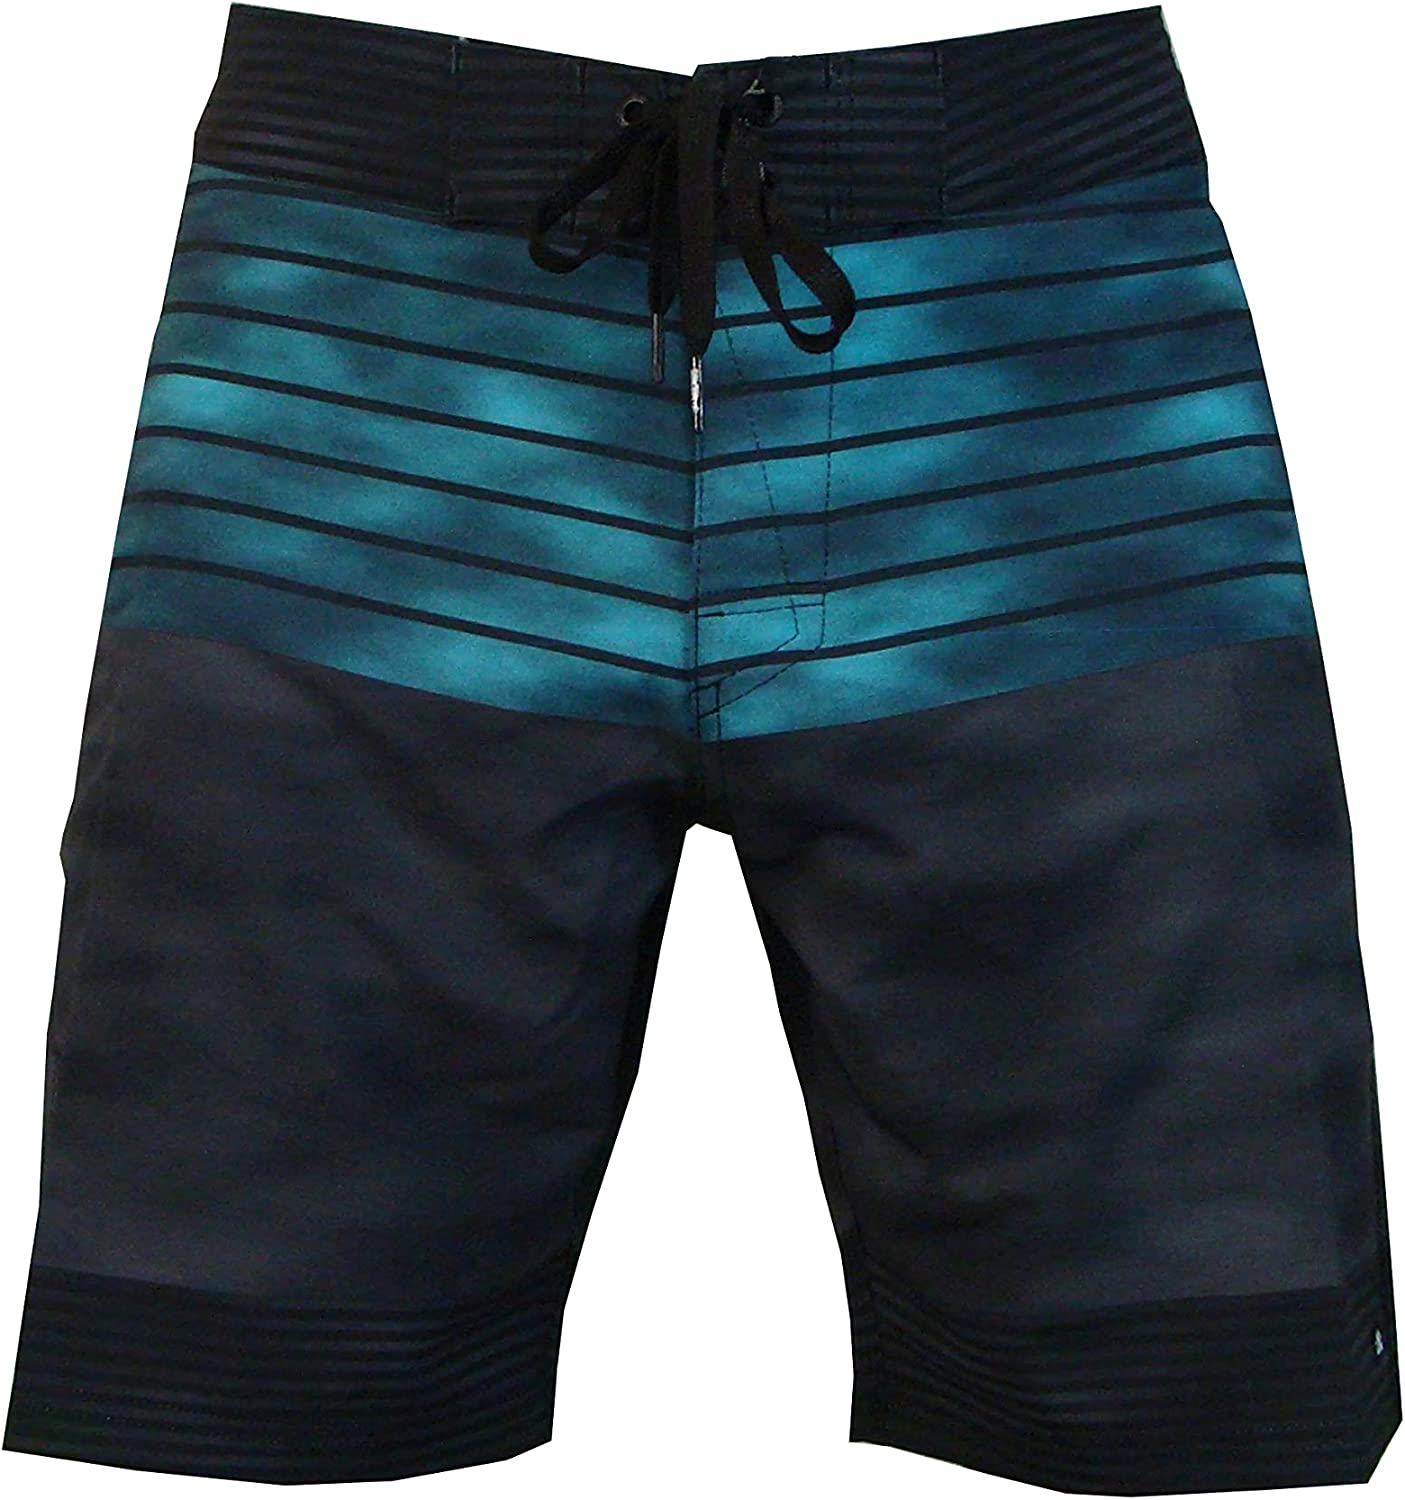 Micros Ares Tie Dye 4 Way Stretch Boardshorts with Comfort Fly for Men